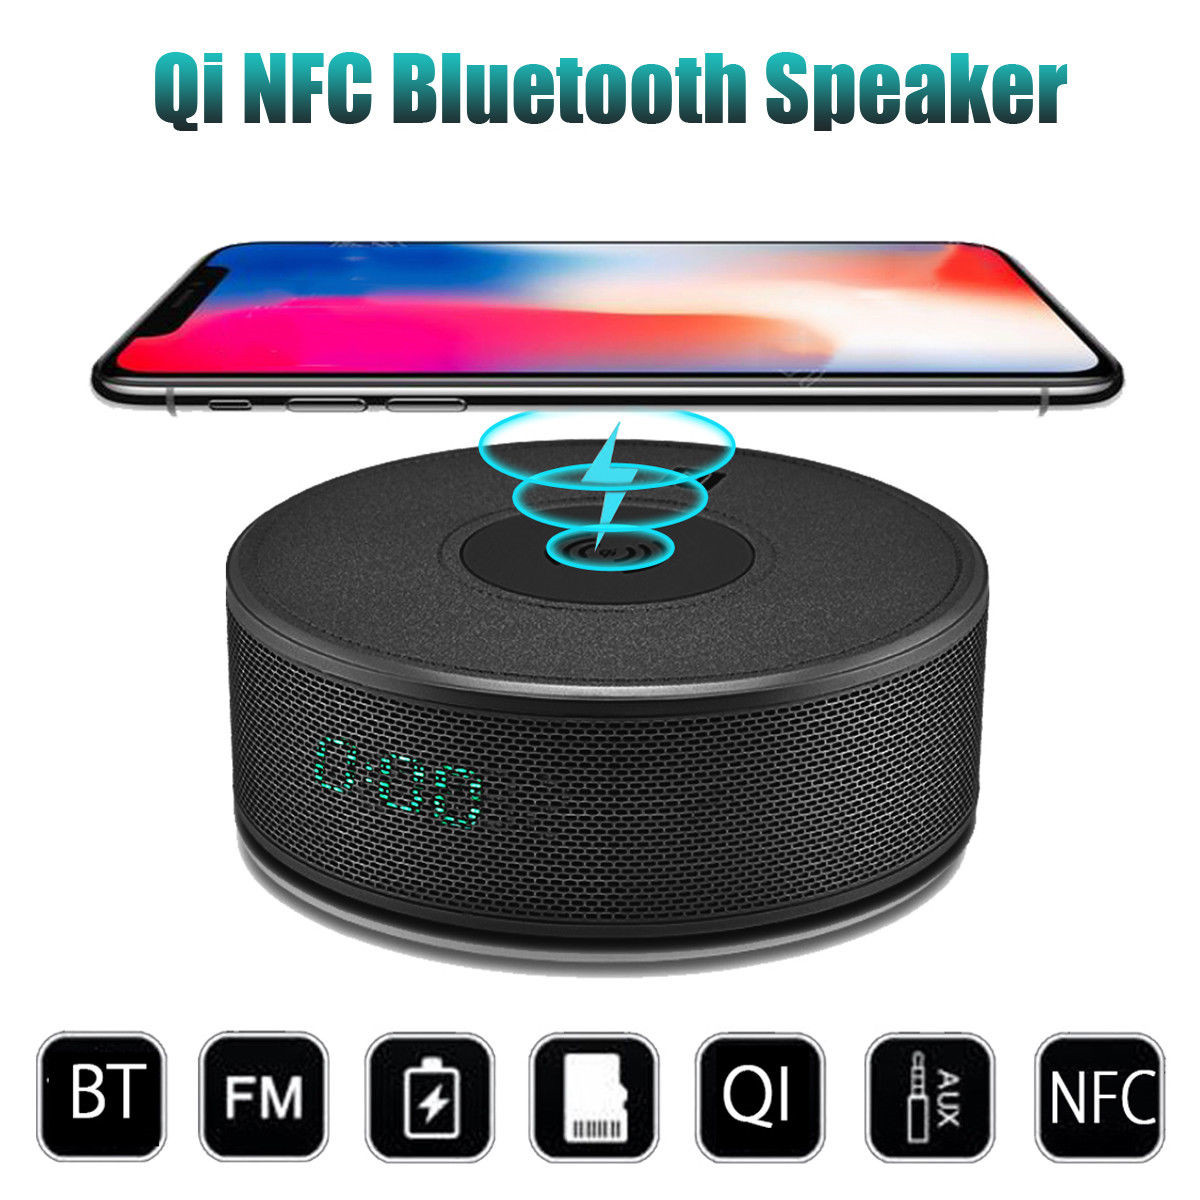 8in1 QI Wireless Charger Charging Pad Dock Power Bank Mini Bluetooth Speaker NFC Android APP Alarm Clock